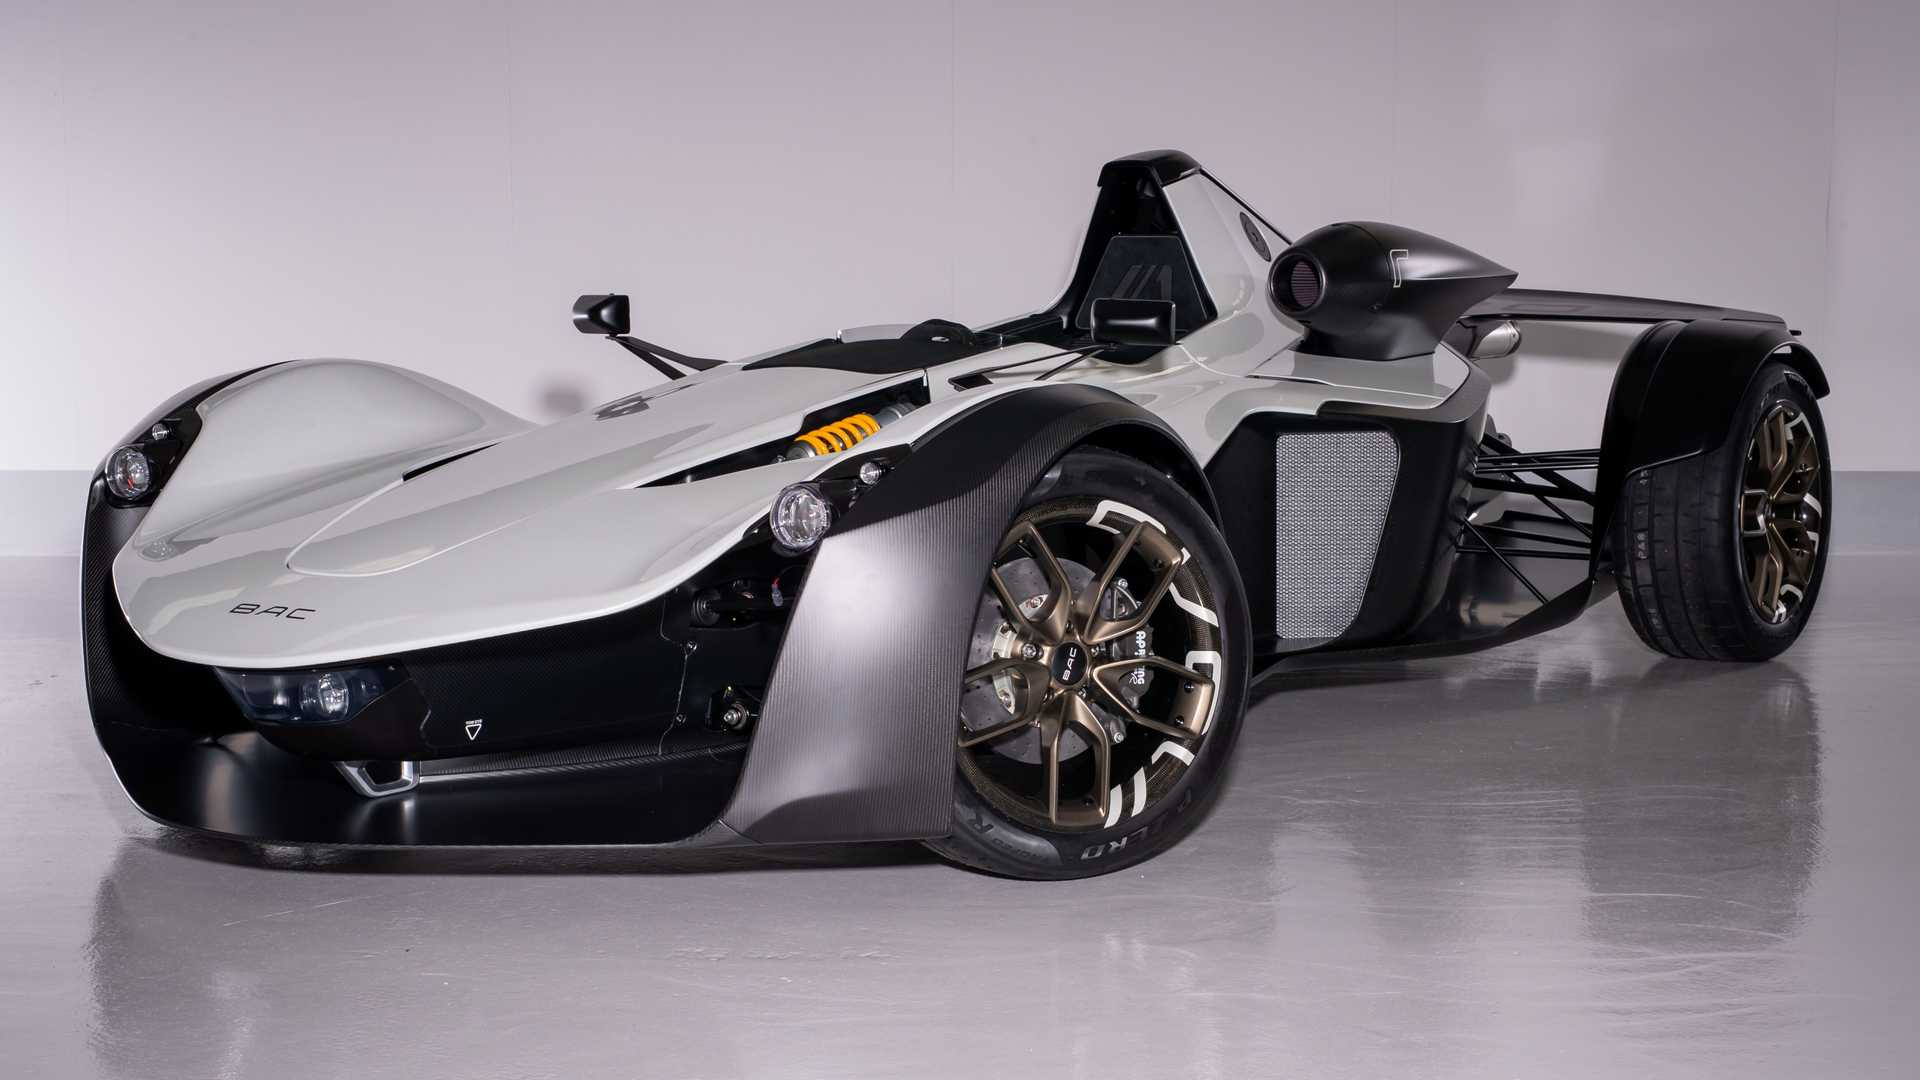 BAC Mono R Unleashed At Goodwood Festival Of Speed